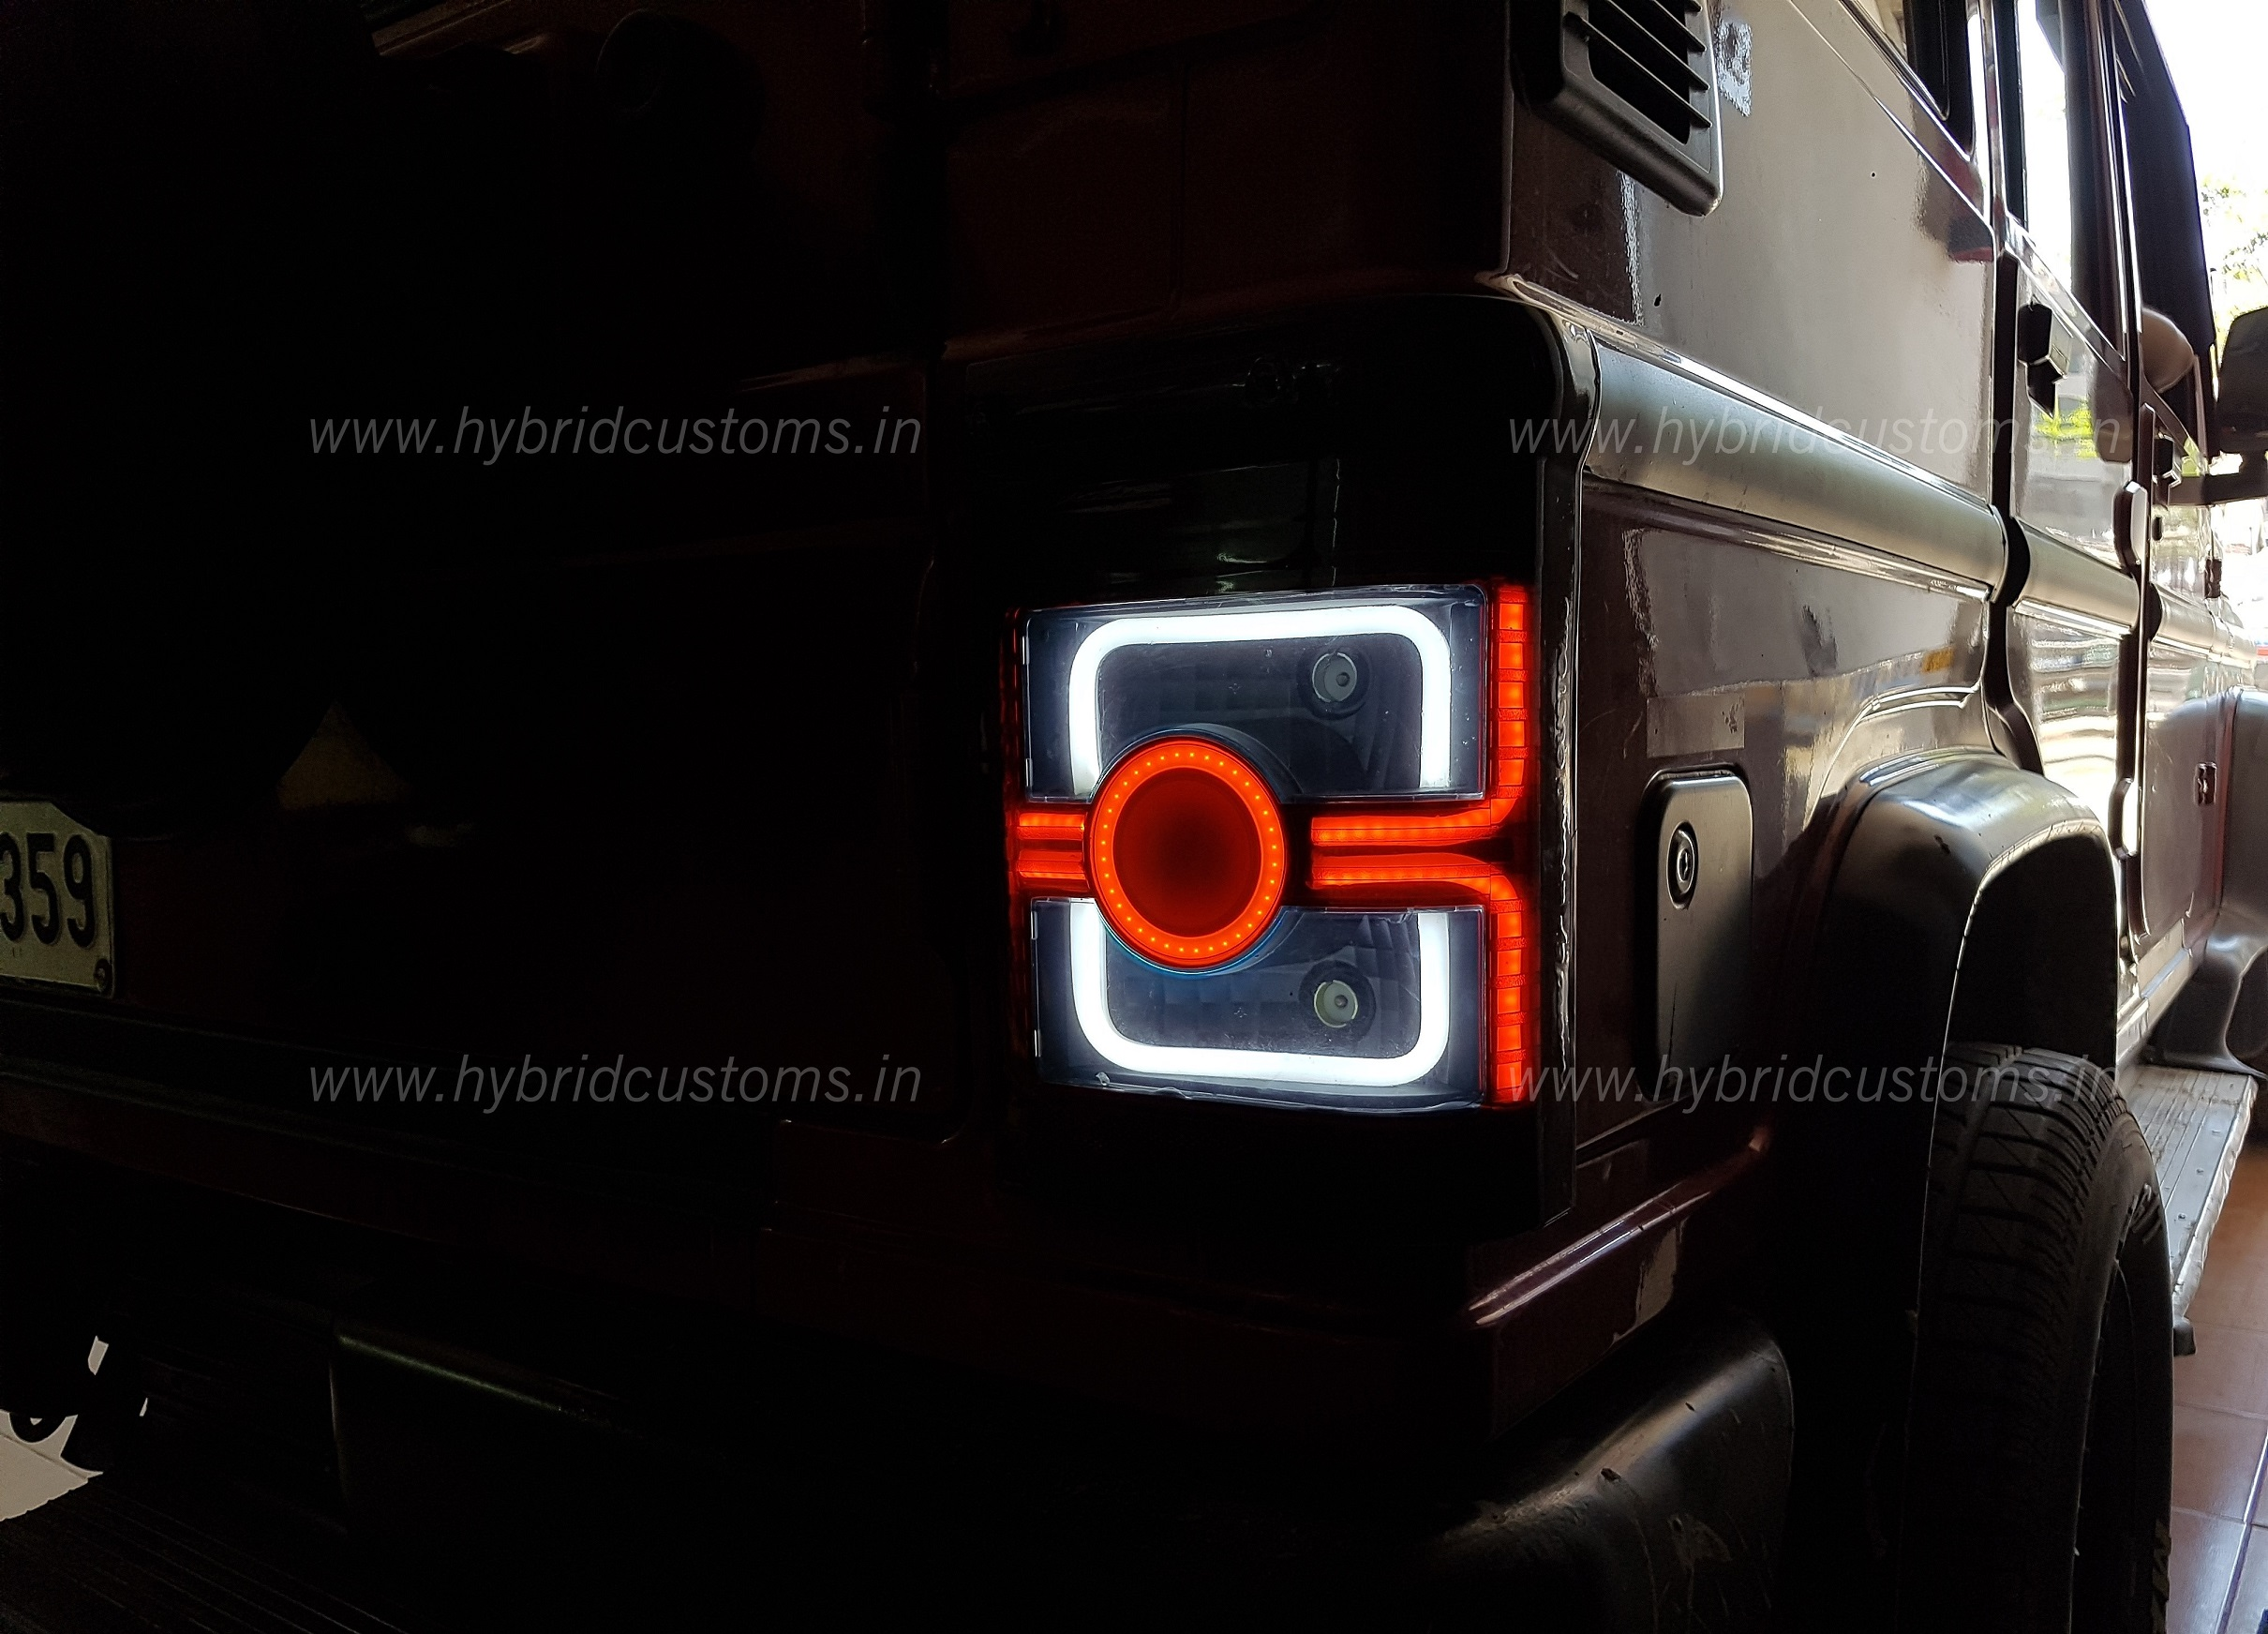 www.hybridcustoms.in/mahindra-bolero-led-tail-lamp/